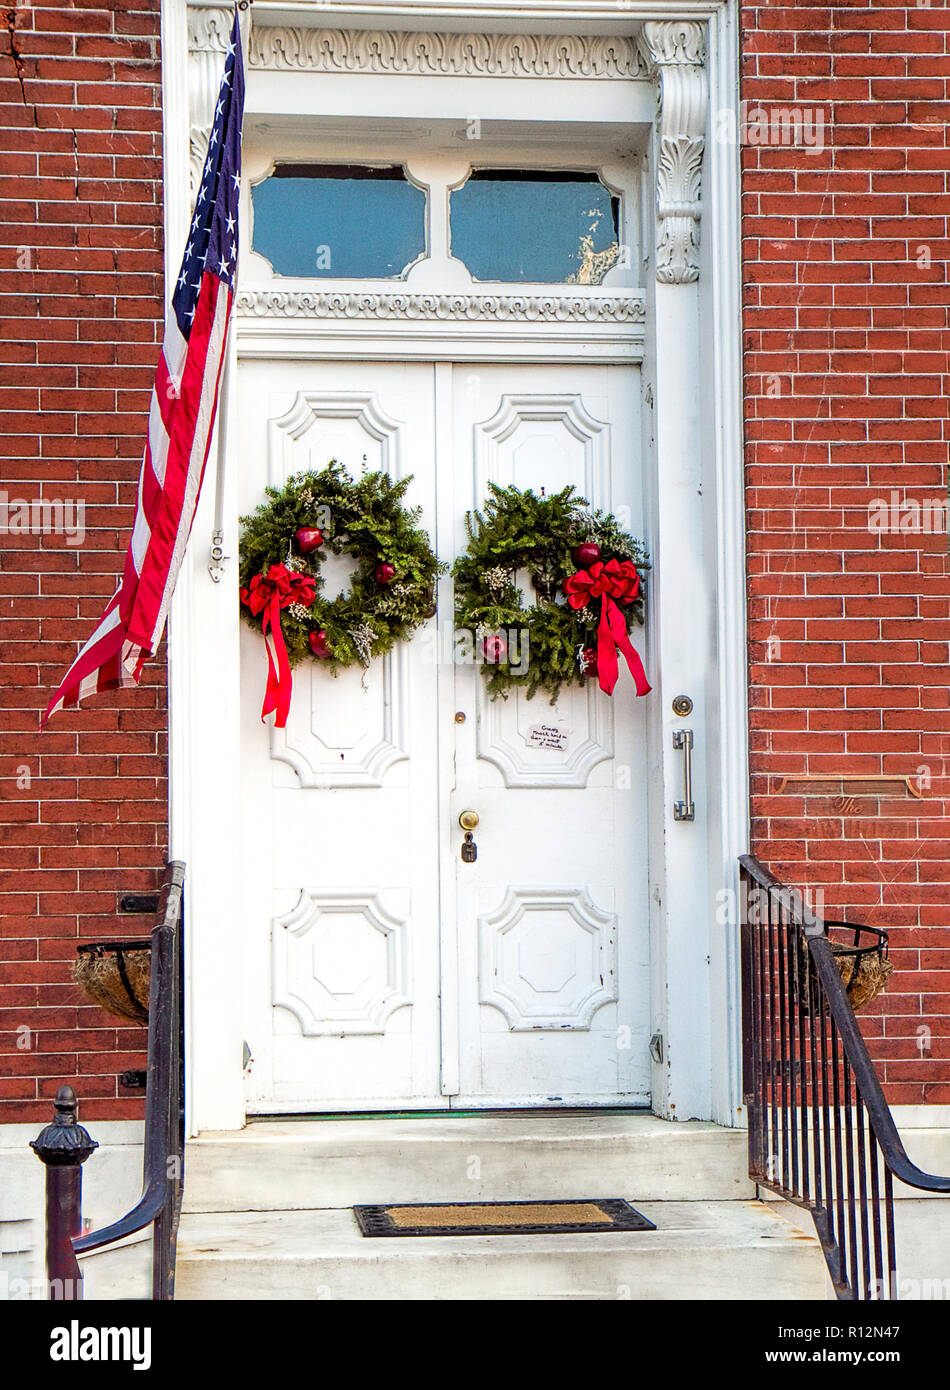 Exterior doors in historic town decorated for the Christmas holidays giving a feeling of yesteryear.  Closeup of doors only. Stock Photo